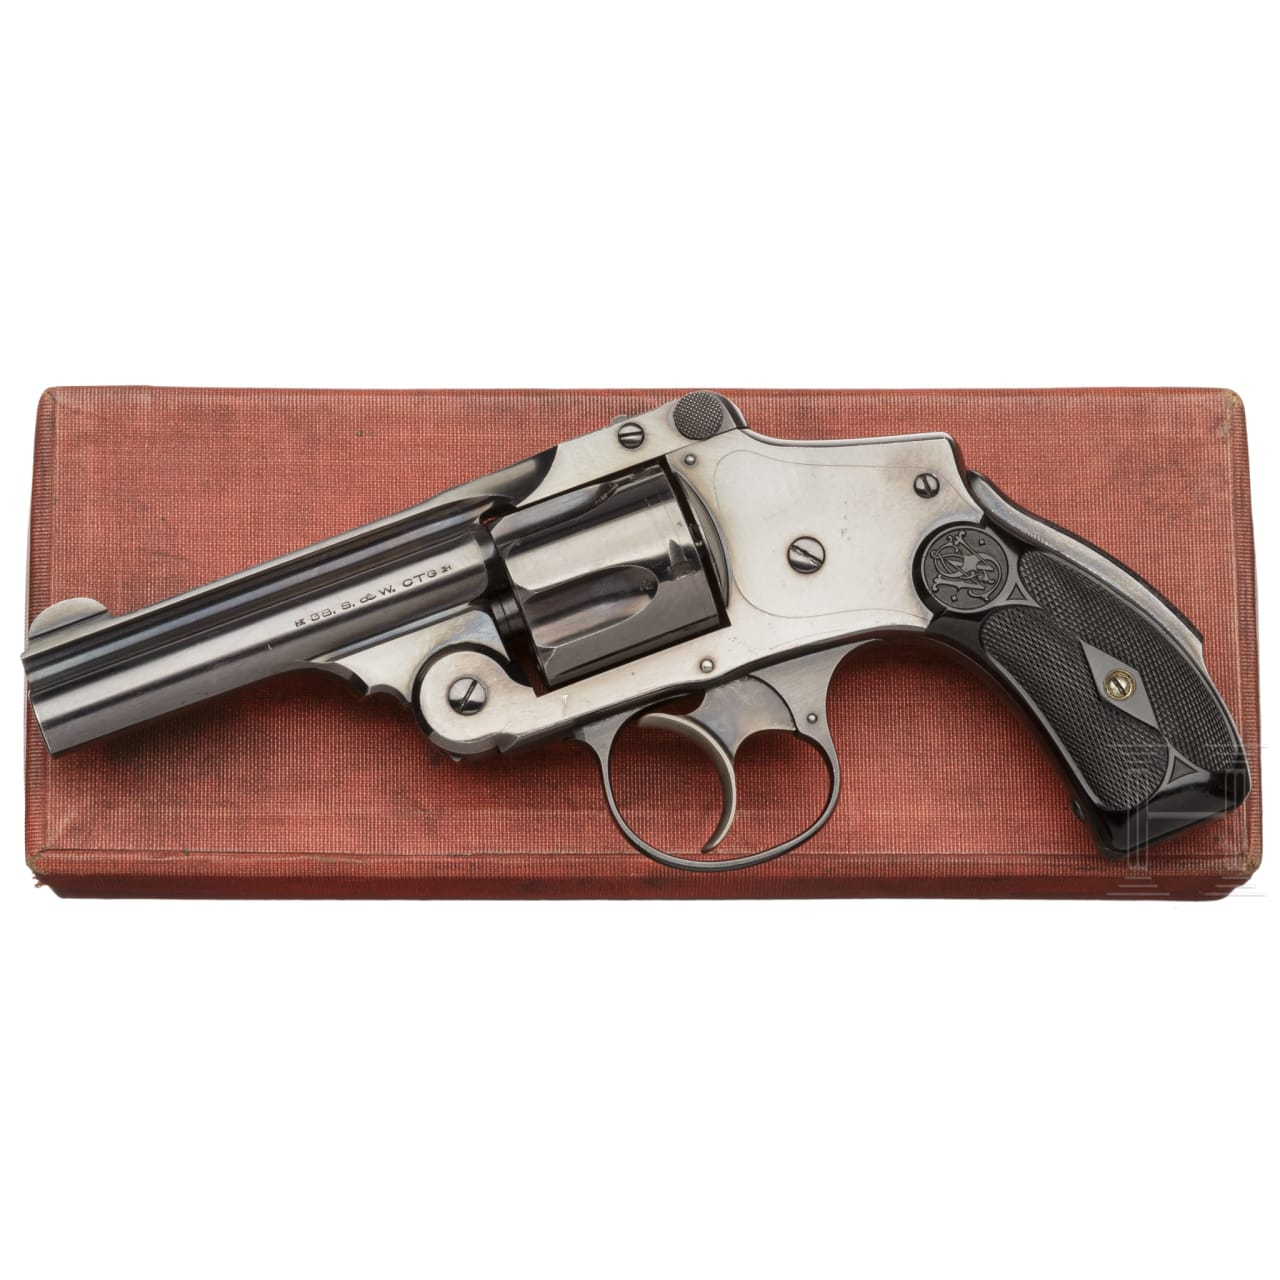 A Smith & Wesson .38 Safety Hammerless 5th Model, in box